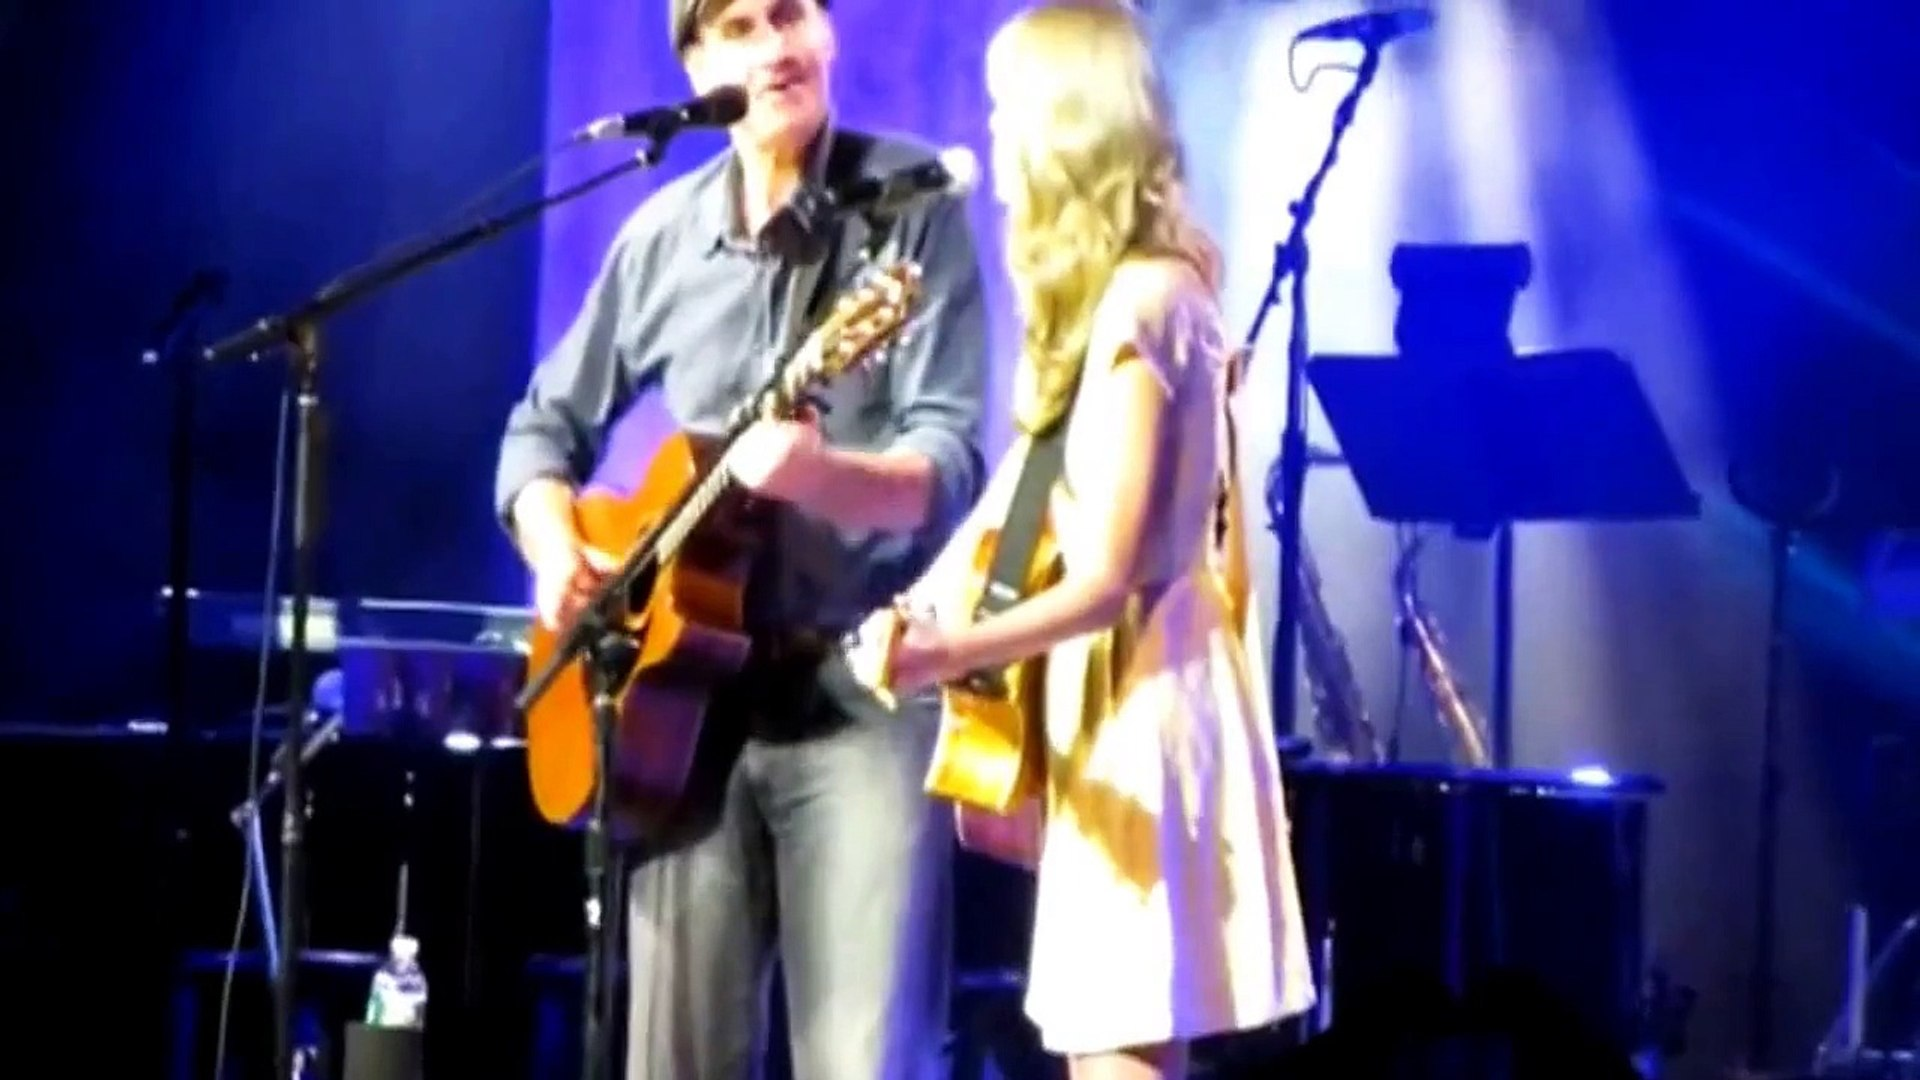 Taylor Swift Concert With James Taylor (her namesake)